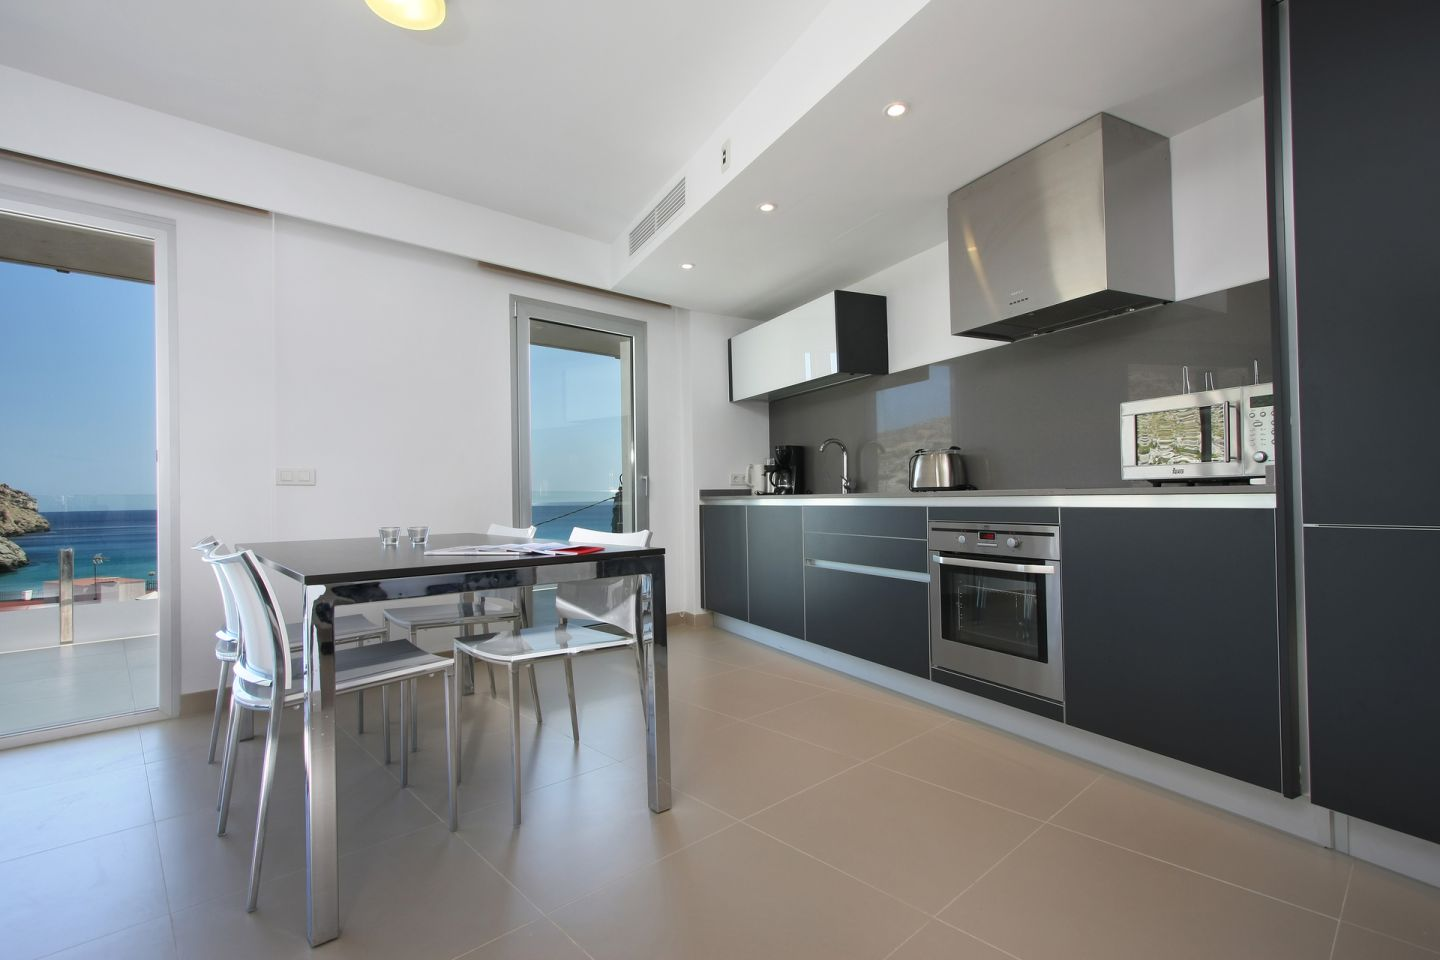 2 Bed Ground Floor for sale in Cala San Vicente 5